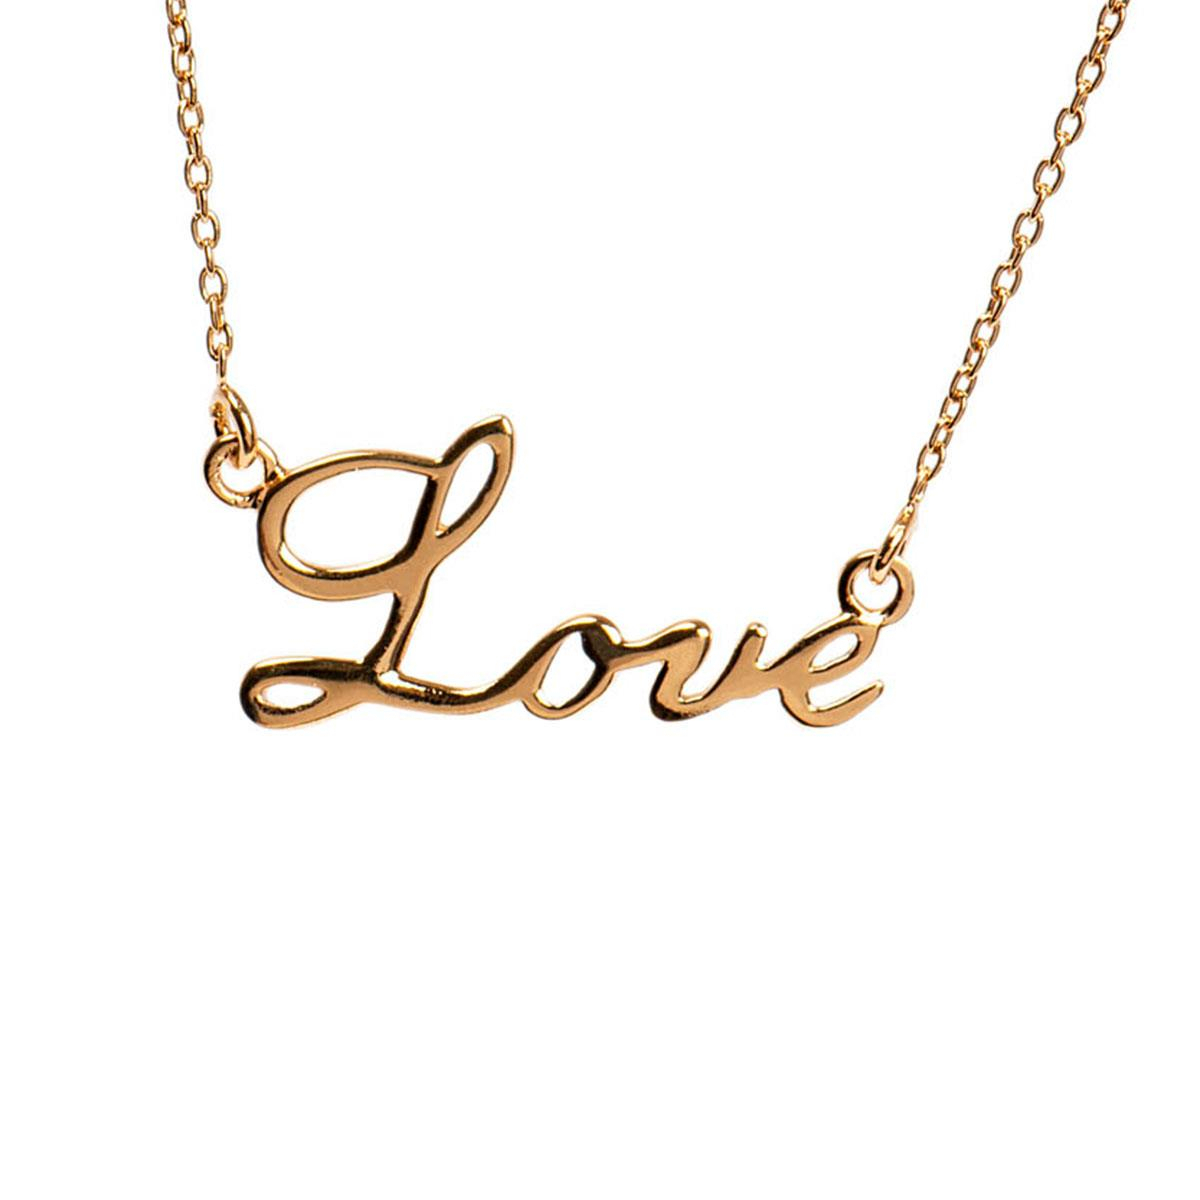 Love Script Necklace | Romantic Gifts For Her | Mantra Jewellery Pertaining To Most Up To Date Loved Script Necklaces (View 10 of 25)